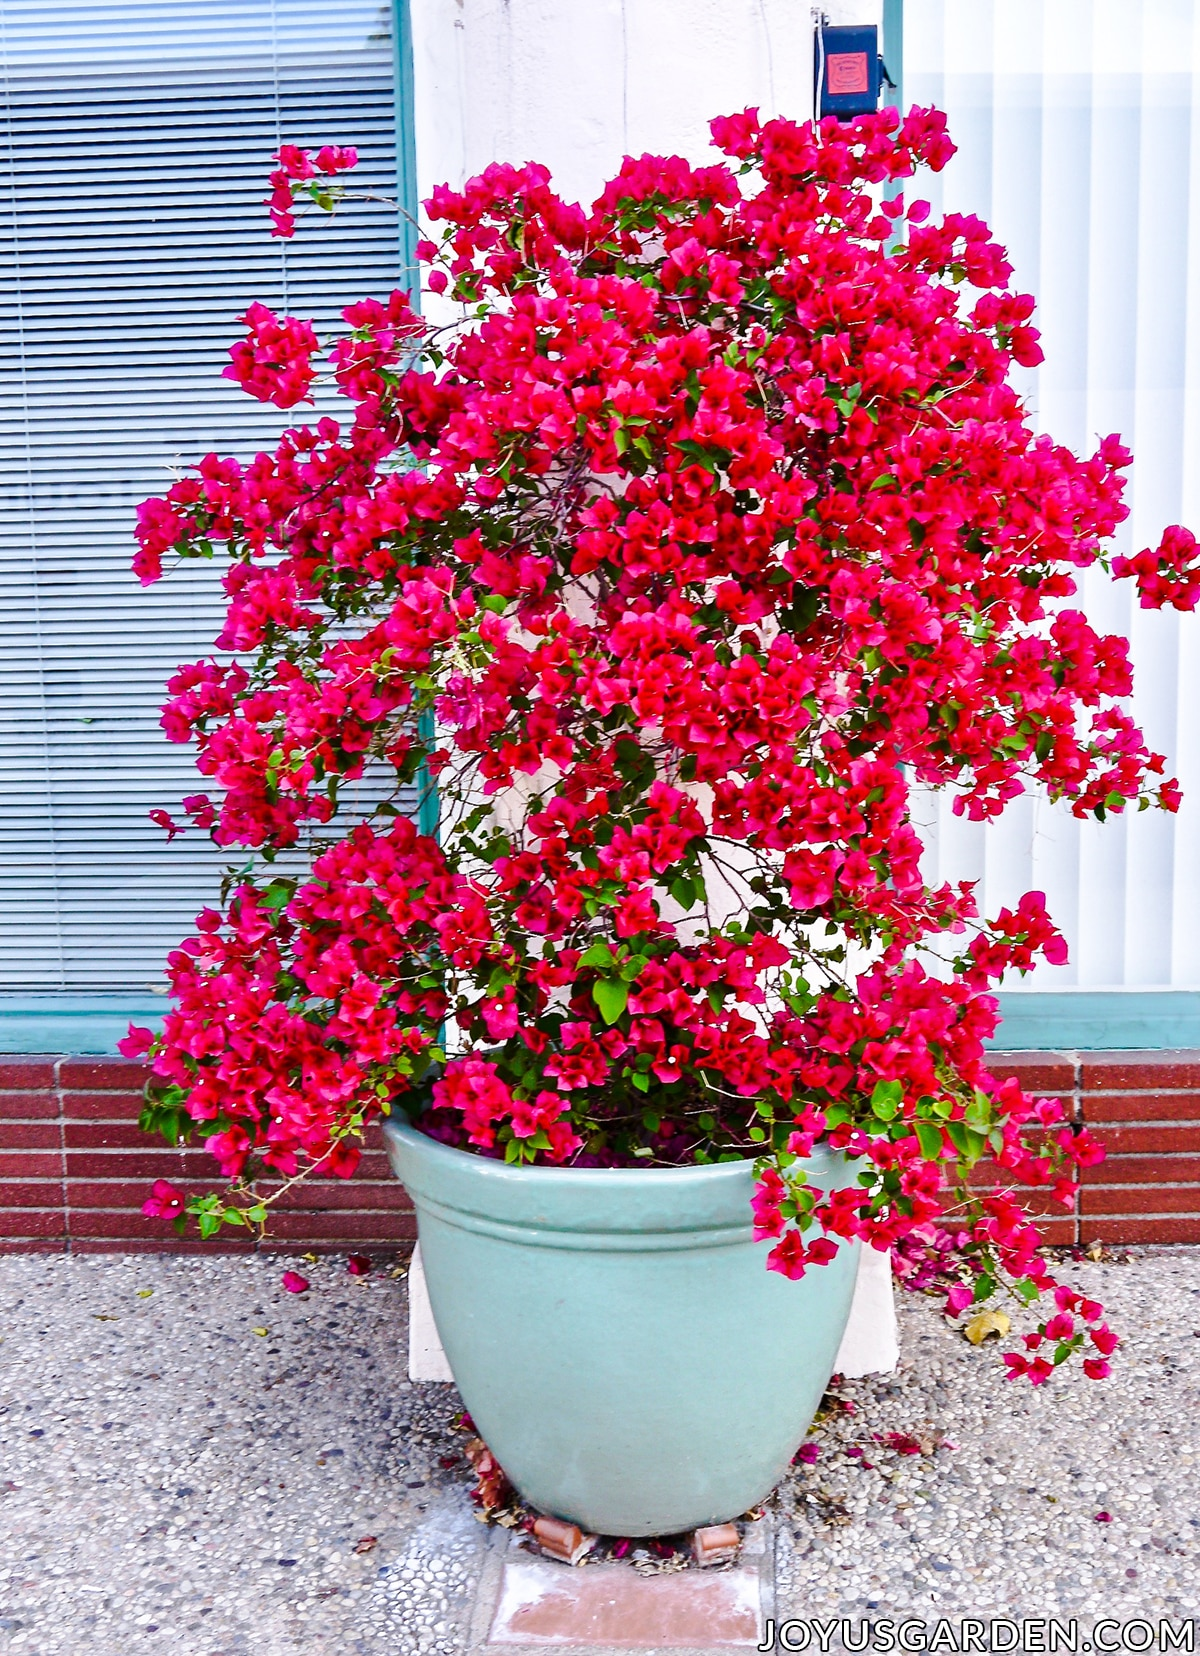 a bright rose red-bougainvillea in full bloom grows in a light blue ceramic